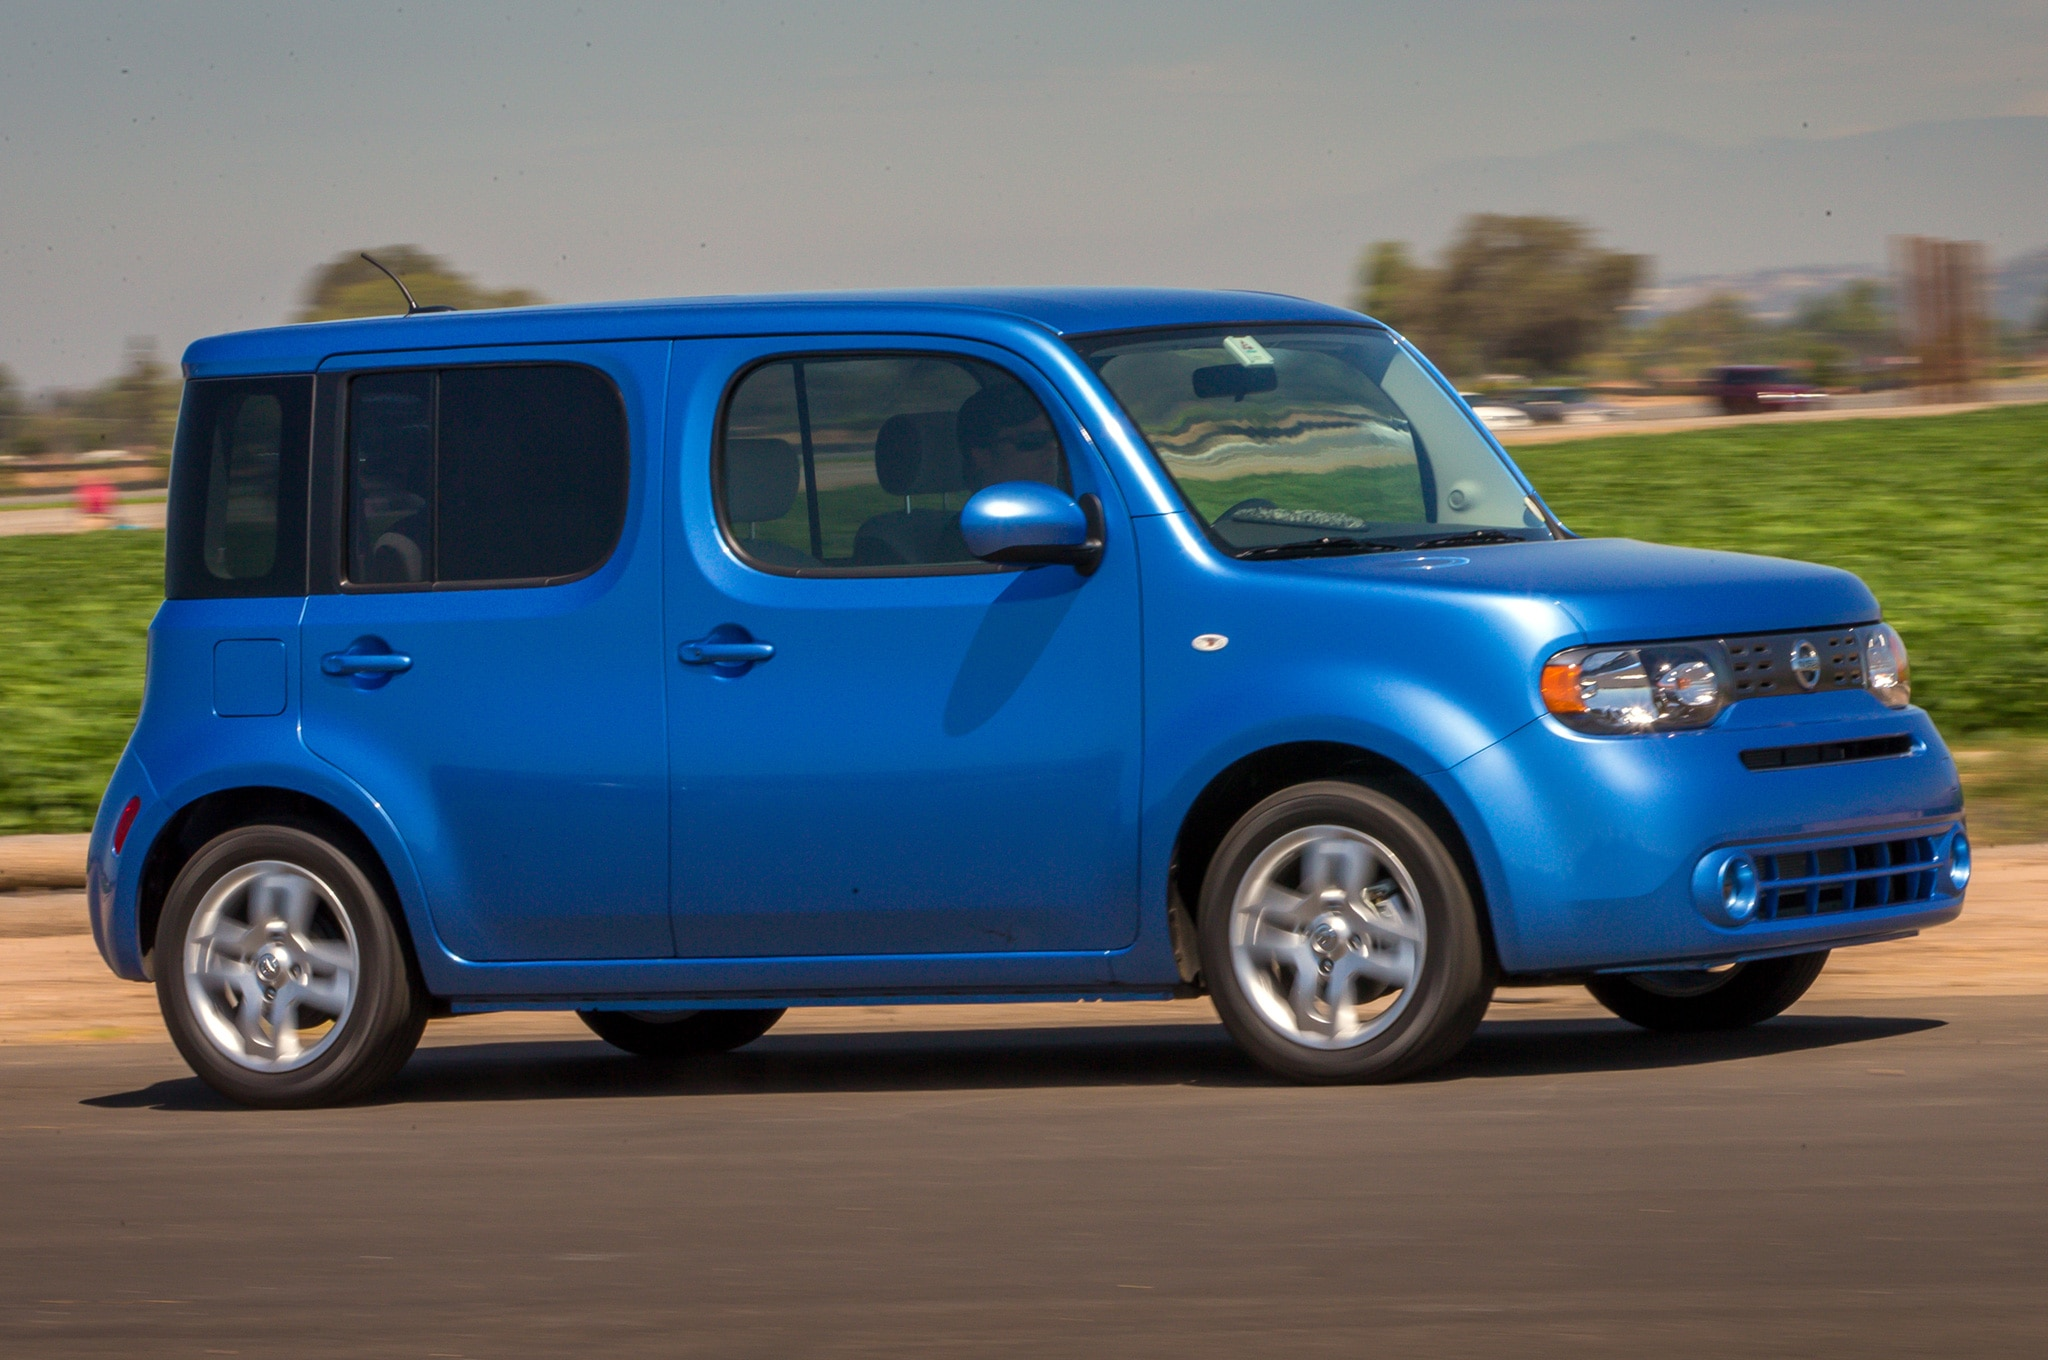 2014 nissan cube base price rises 20 to 17 570. Black Bedroom Furniture Sets. Home Design Ideas